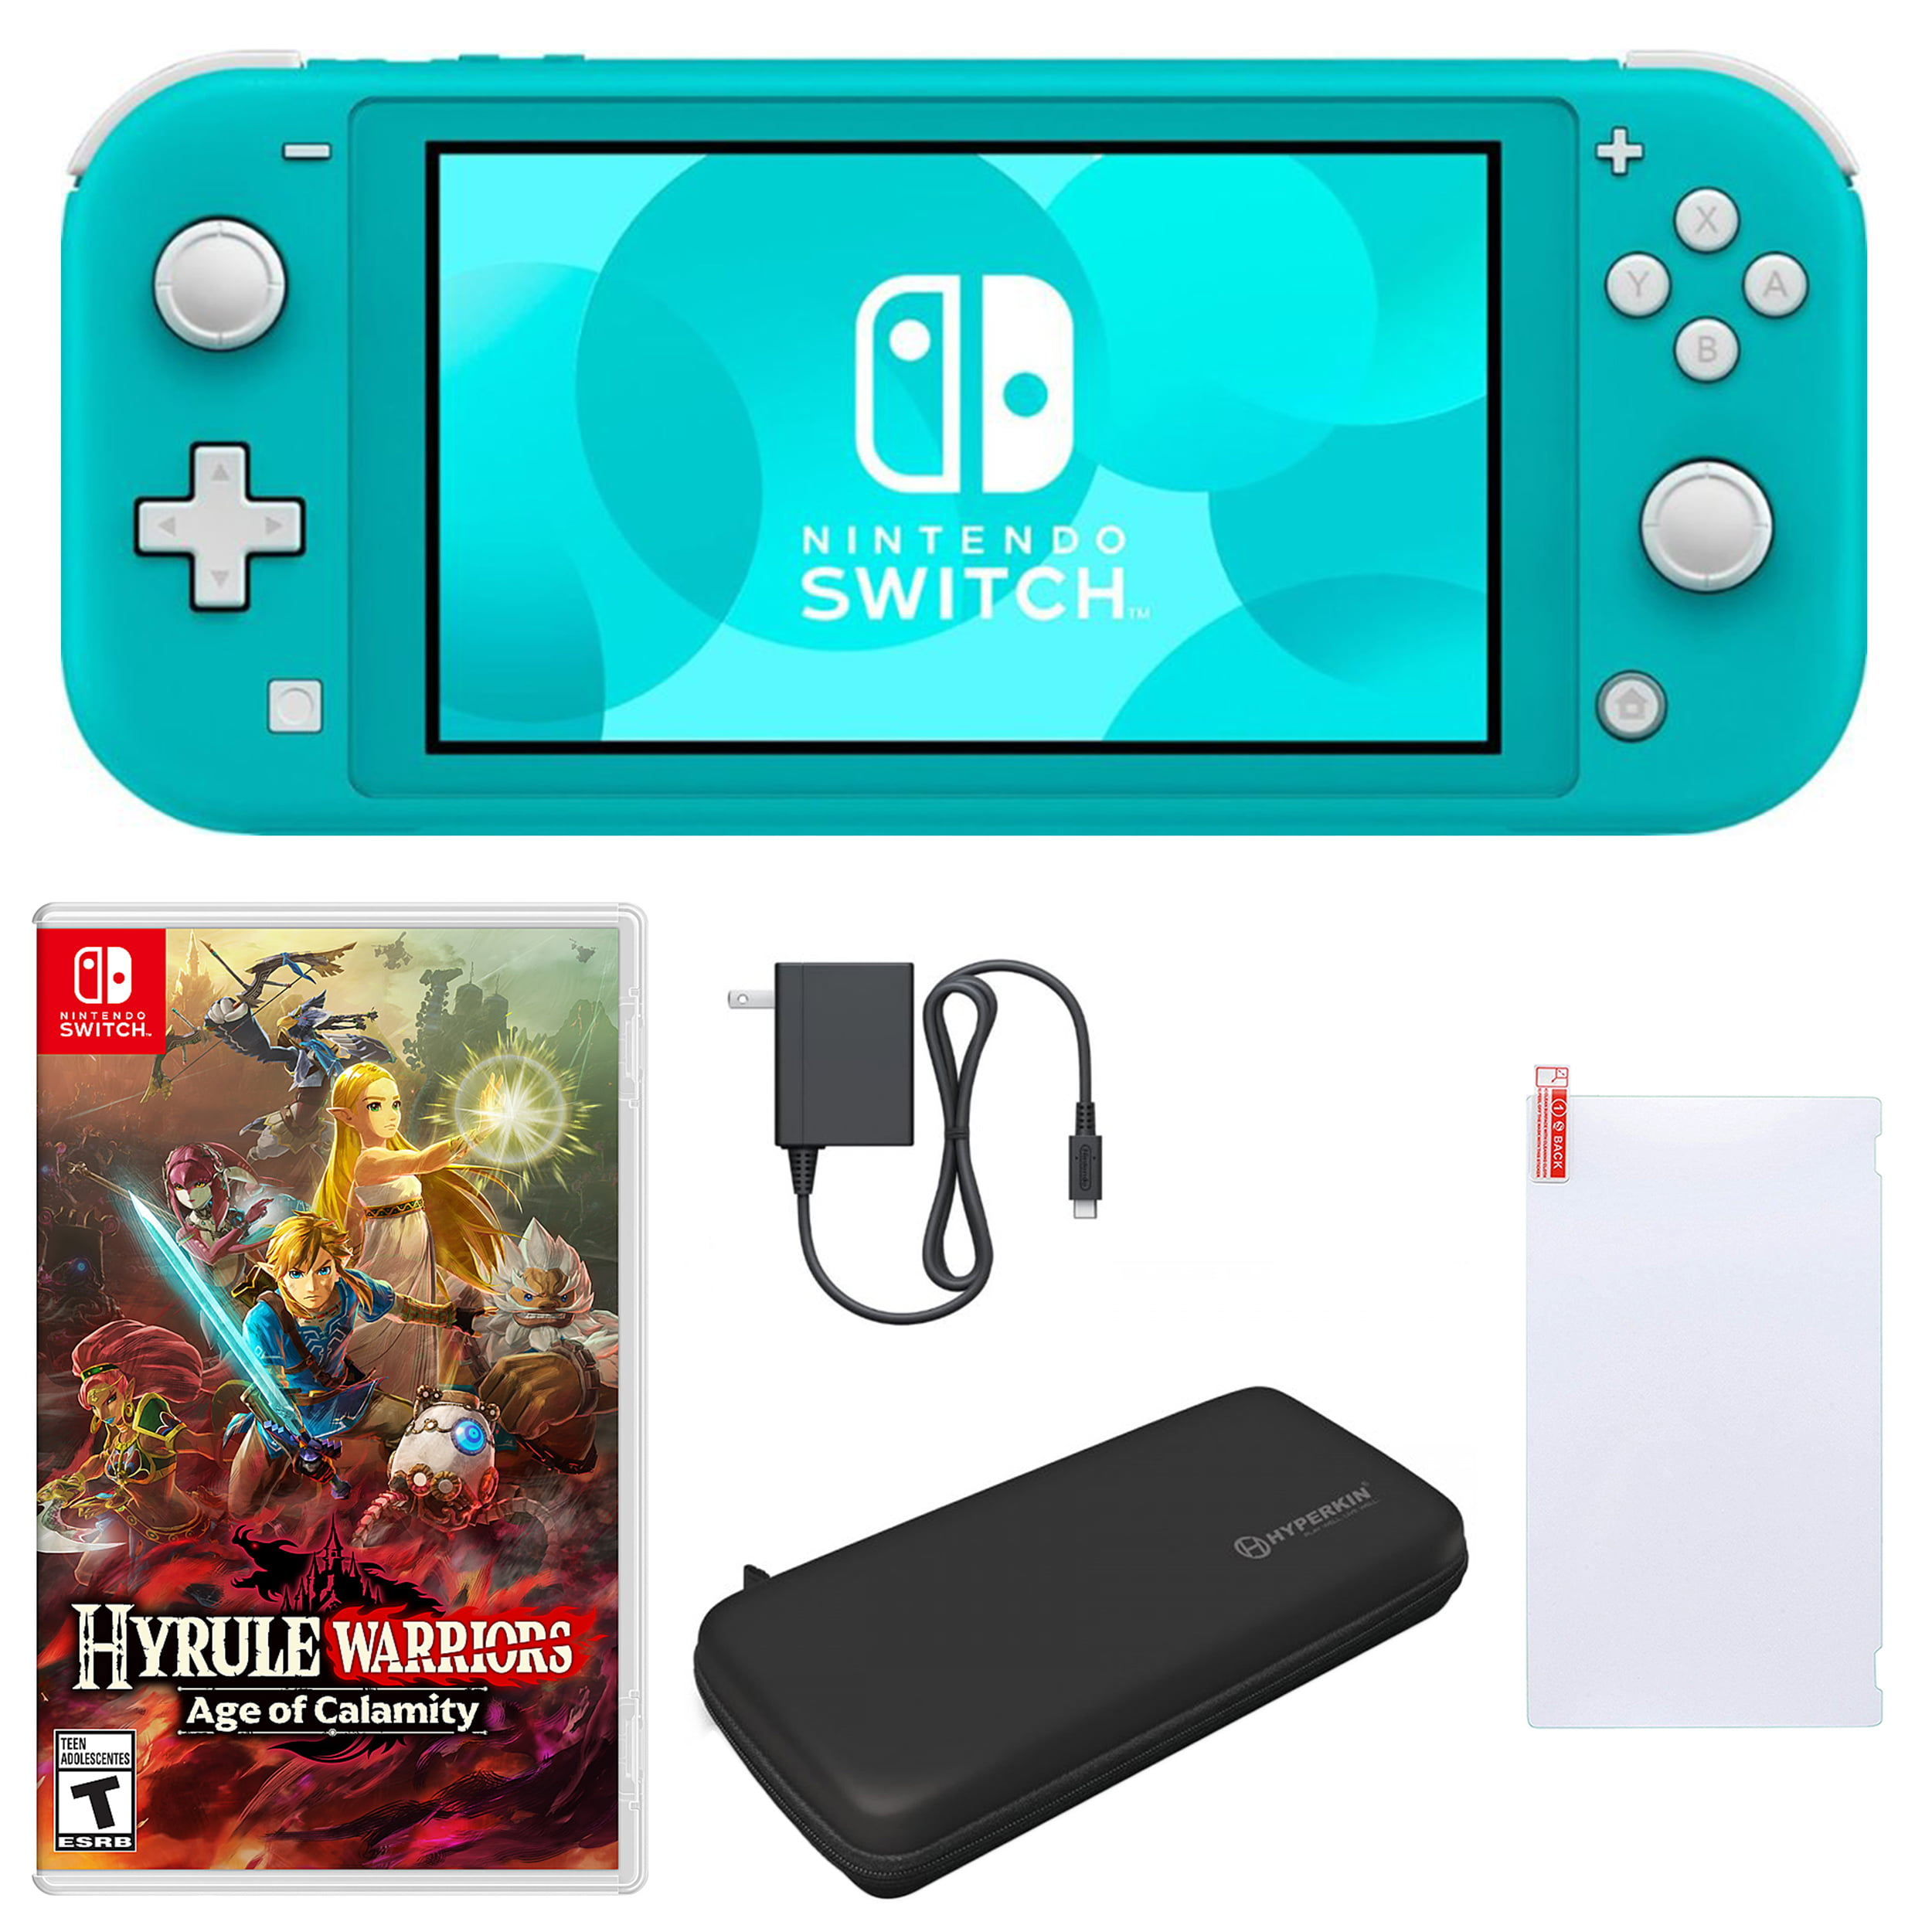 Nintendo Switch Lite In Turquoise With Hyrule Warriors Age Of Calamity And Accessories Walmart Com Walmart Com